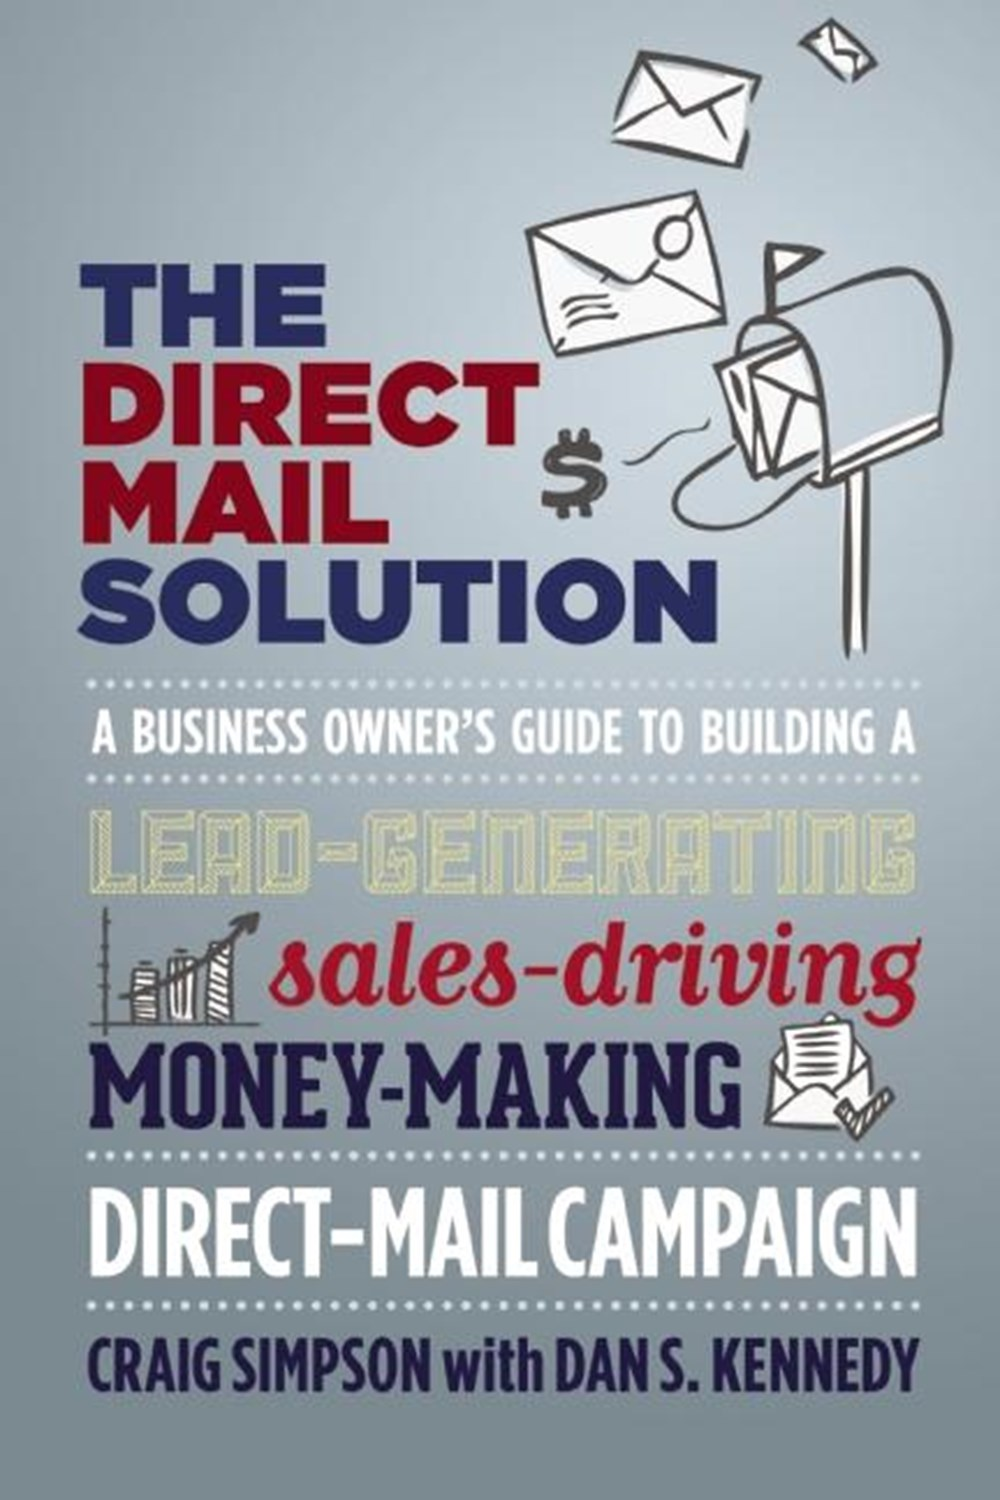 Direct Mail Solution A Business Owner's Guide to Building a Lead-Generating, Sales-Driving, Money-Ma